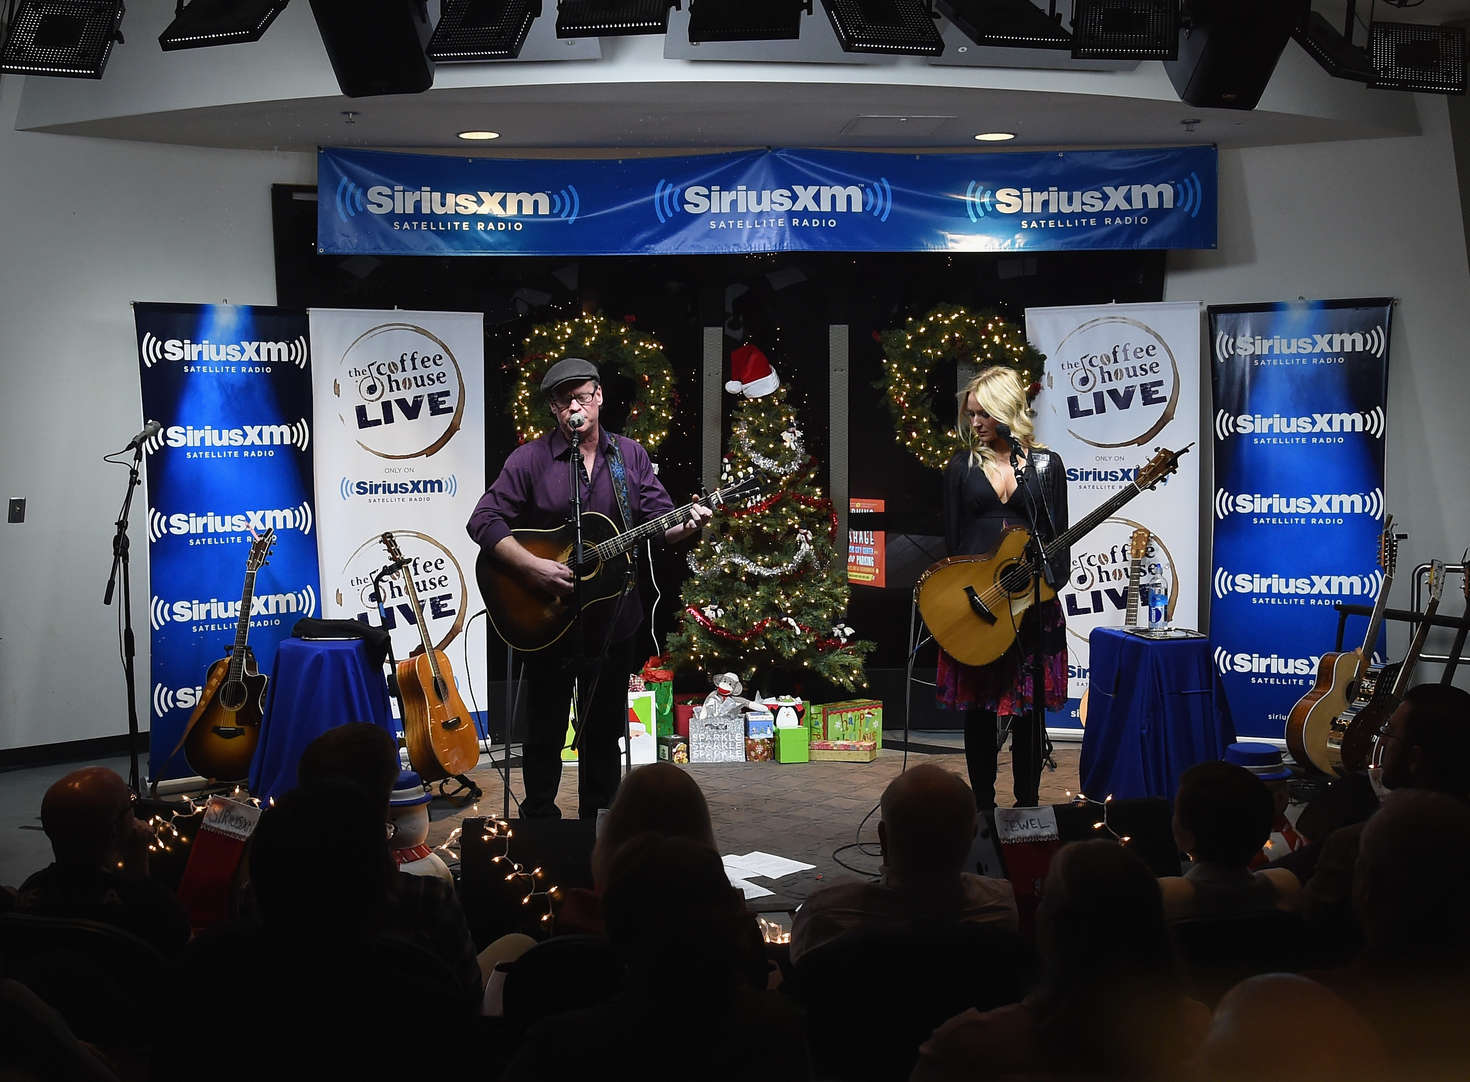 Jewel Kilcher SiriusXM Acoustic Christmas With Jewel And Shawn Mullins in Nashville